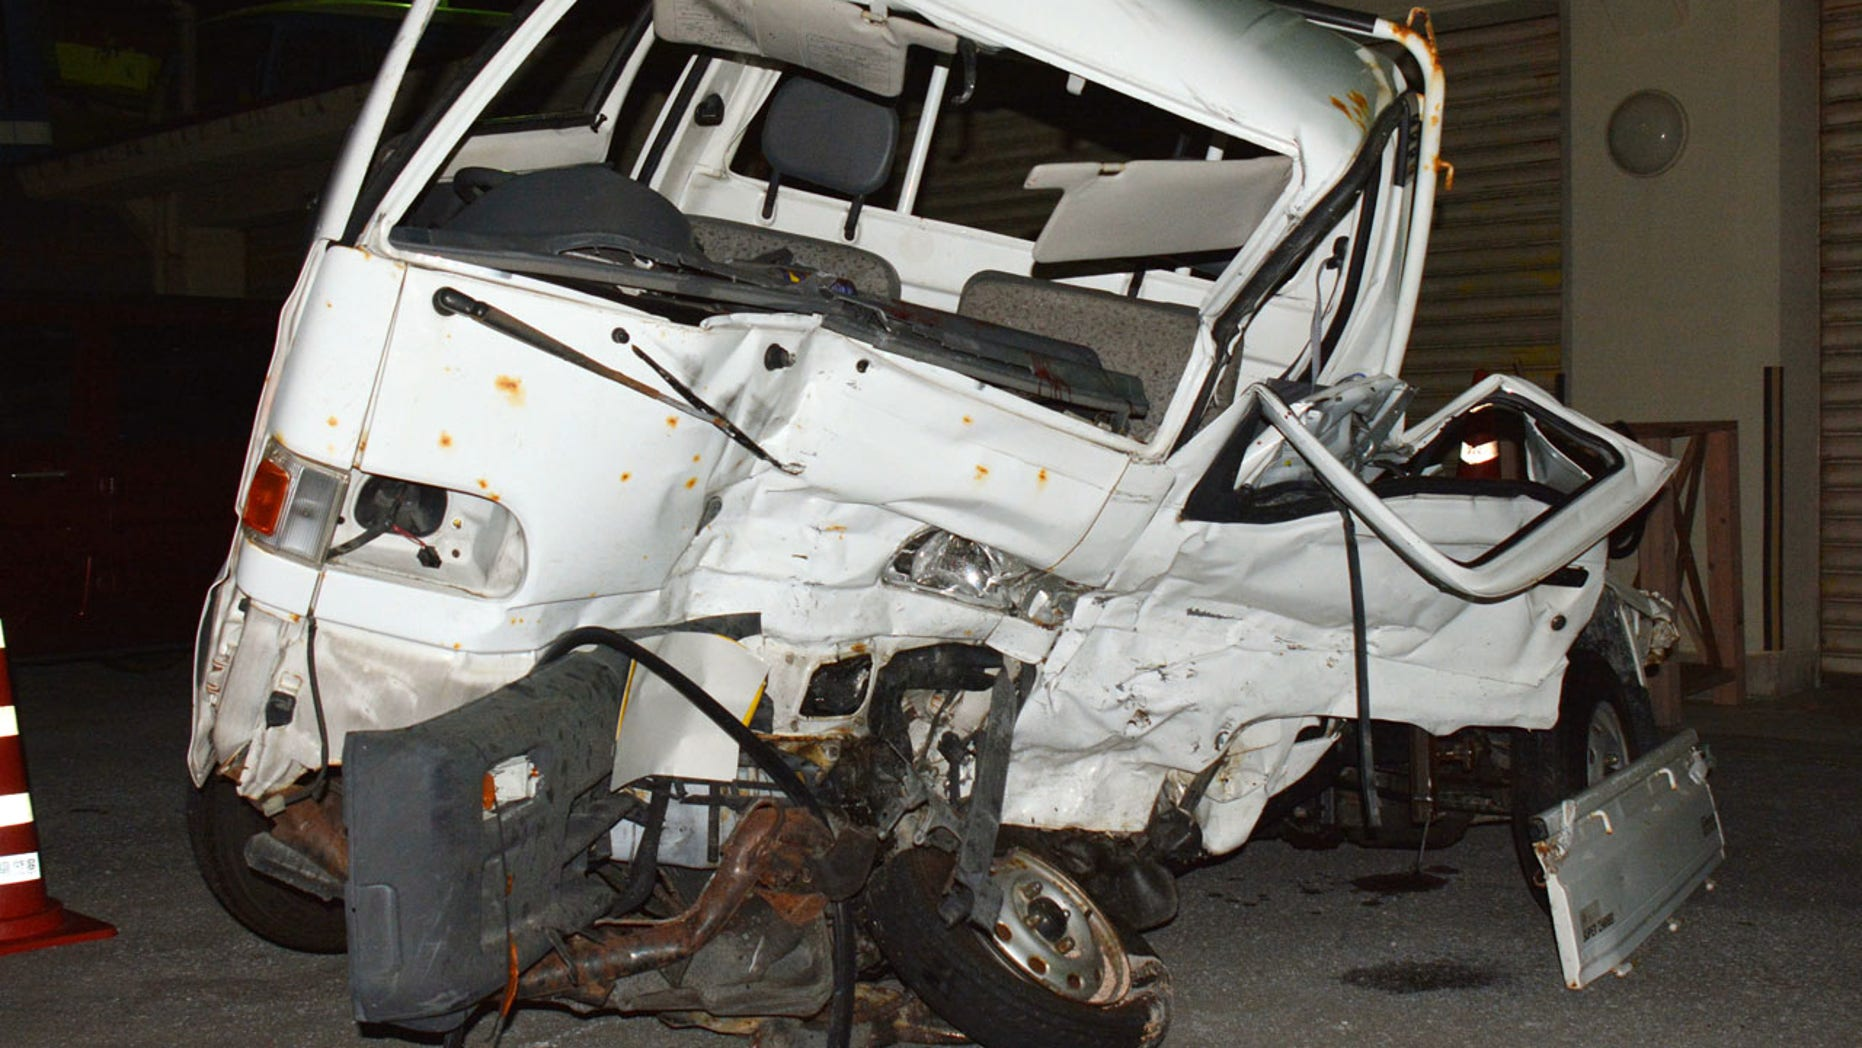 Nov. 19: A Japanese driver's damaged vehicle is placed at a police station in Naha, Okinawa.